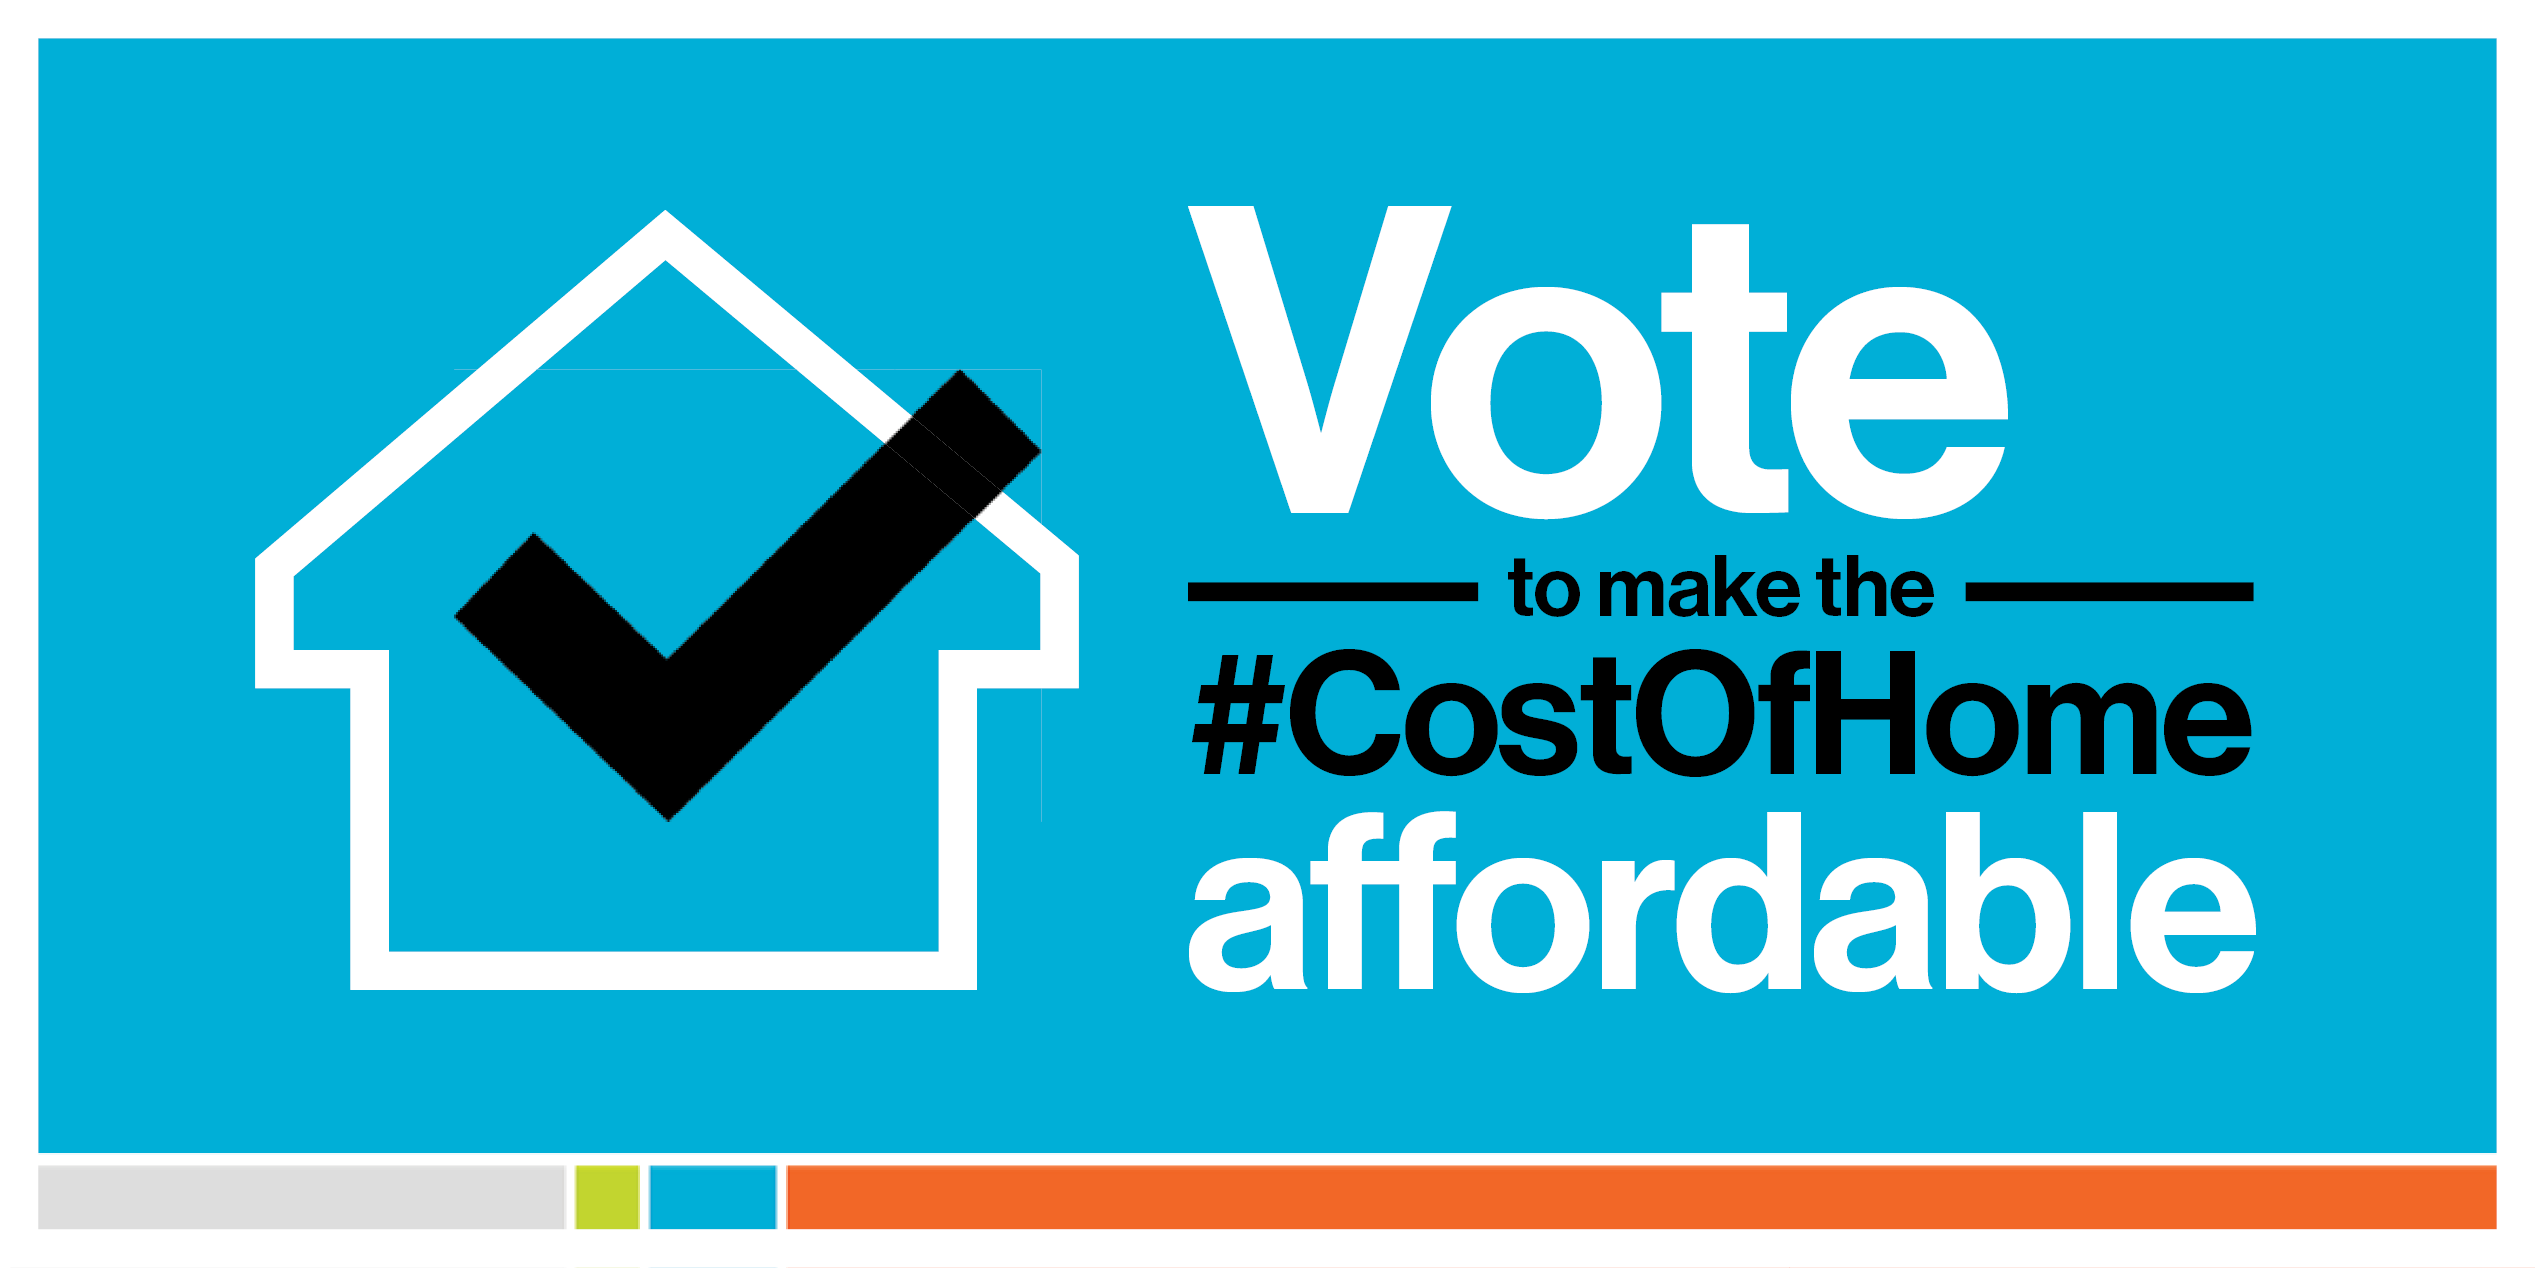 Vote to make the cost of home affordable